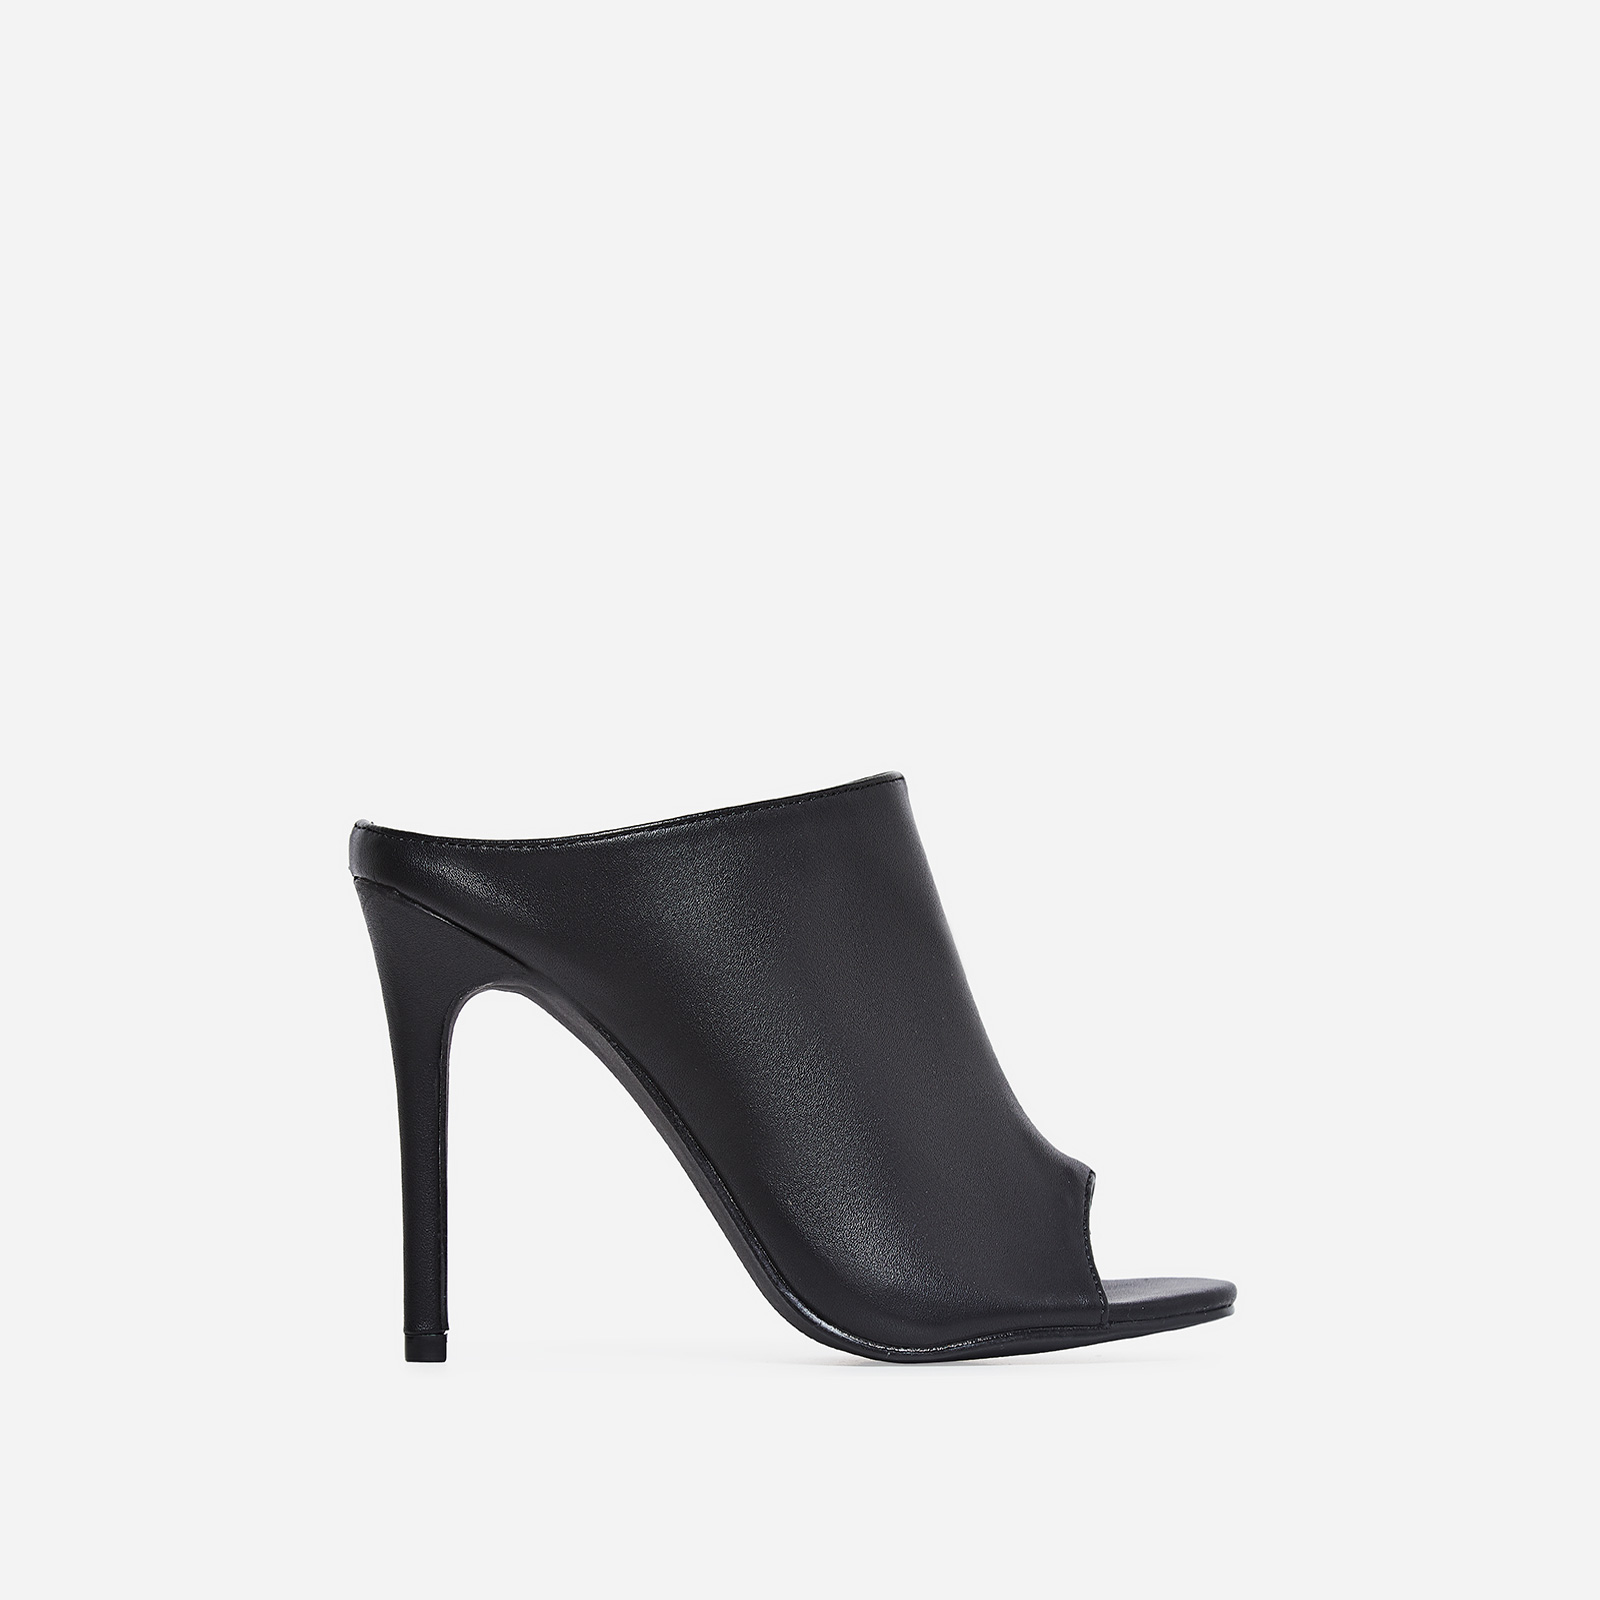 Downtown Peep Toe Mule In Black Faux Leather